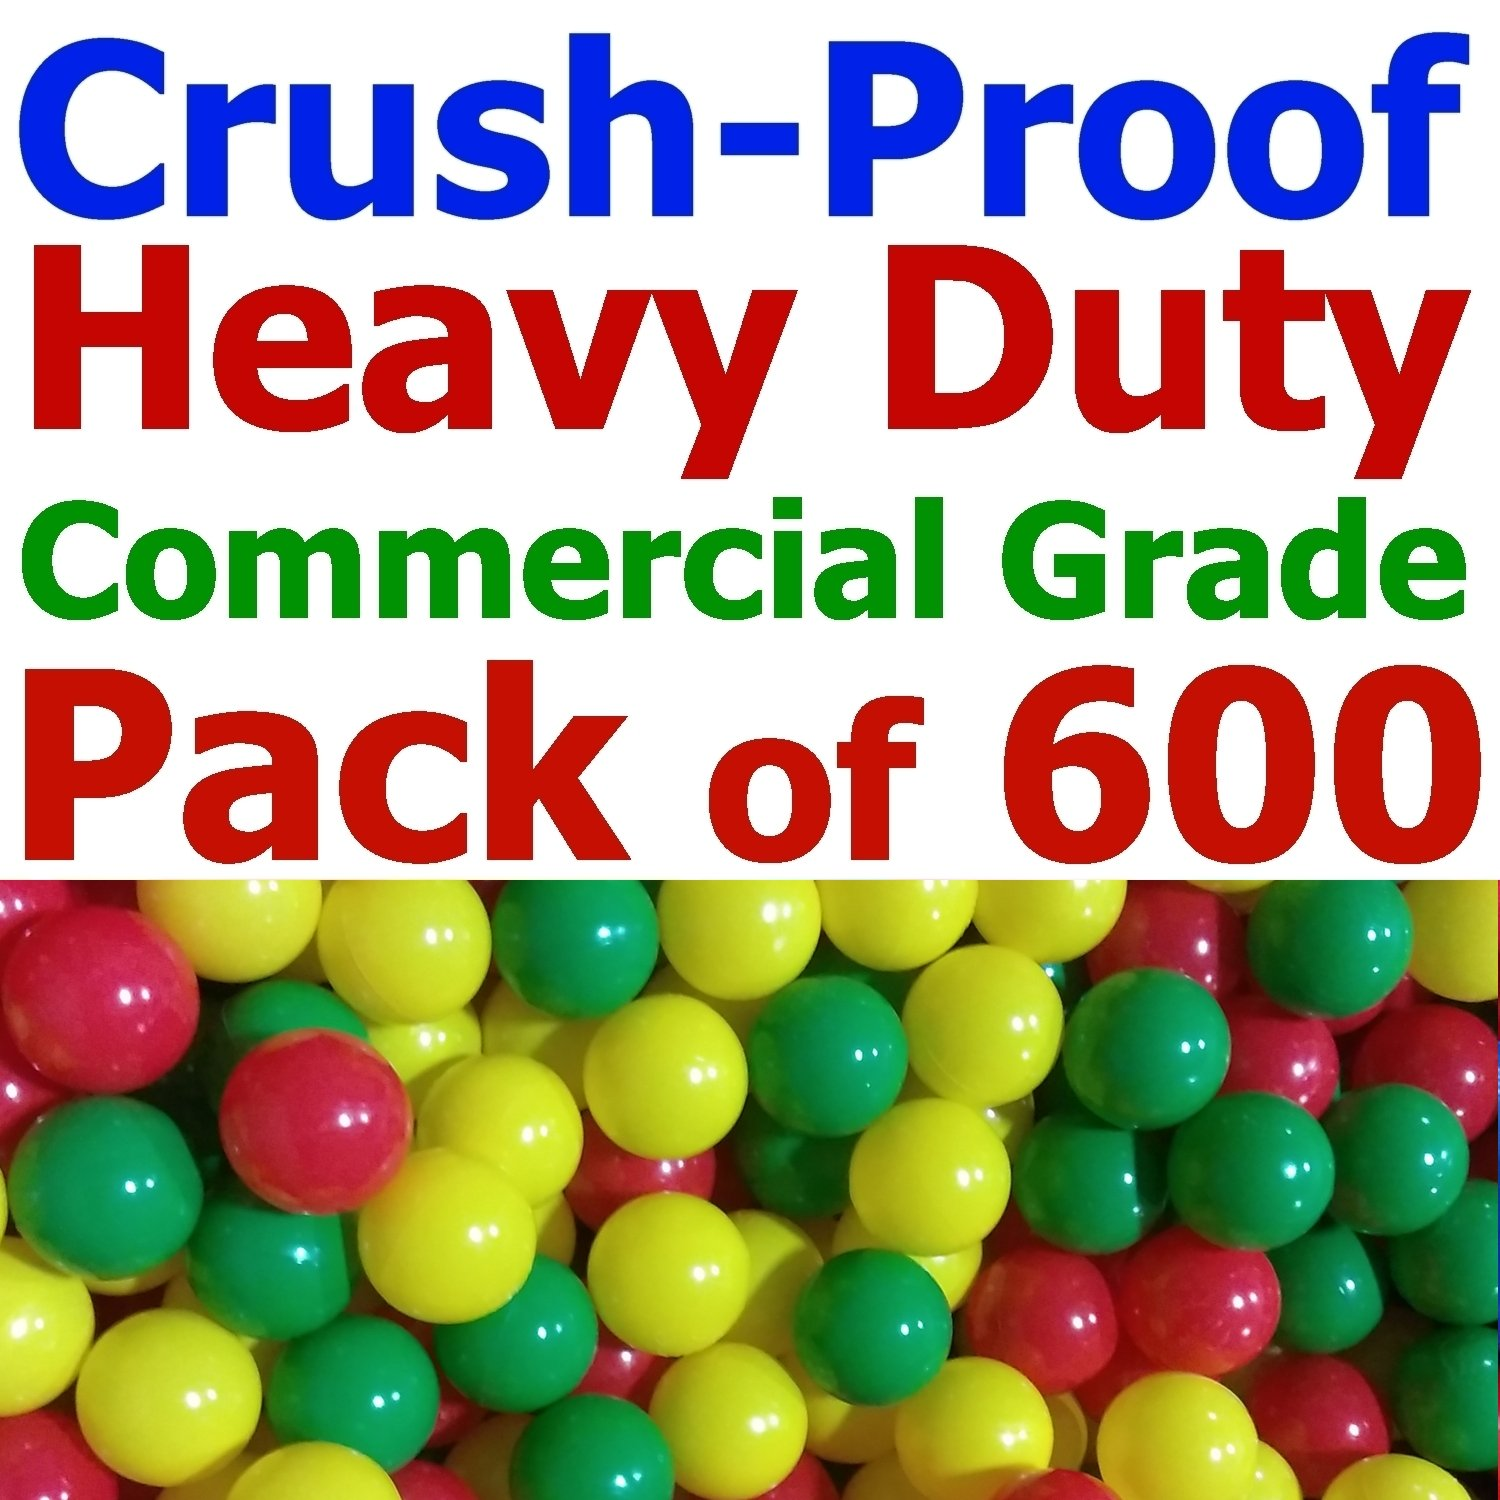 My Balls Pack of 600 Jumbo 3' Red/Yellow / Green Colors of Season Heavy Duty Commercial Grade Crush-Proof Ball Pit Balls - Phthalate Free BPA Free Non-Recycled Plastic CMS